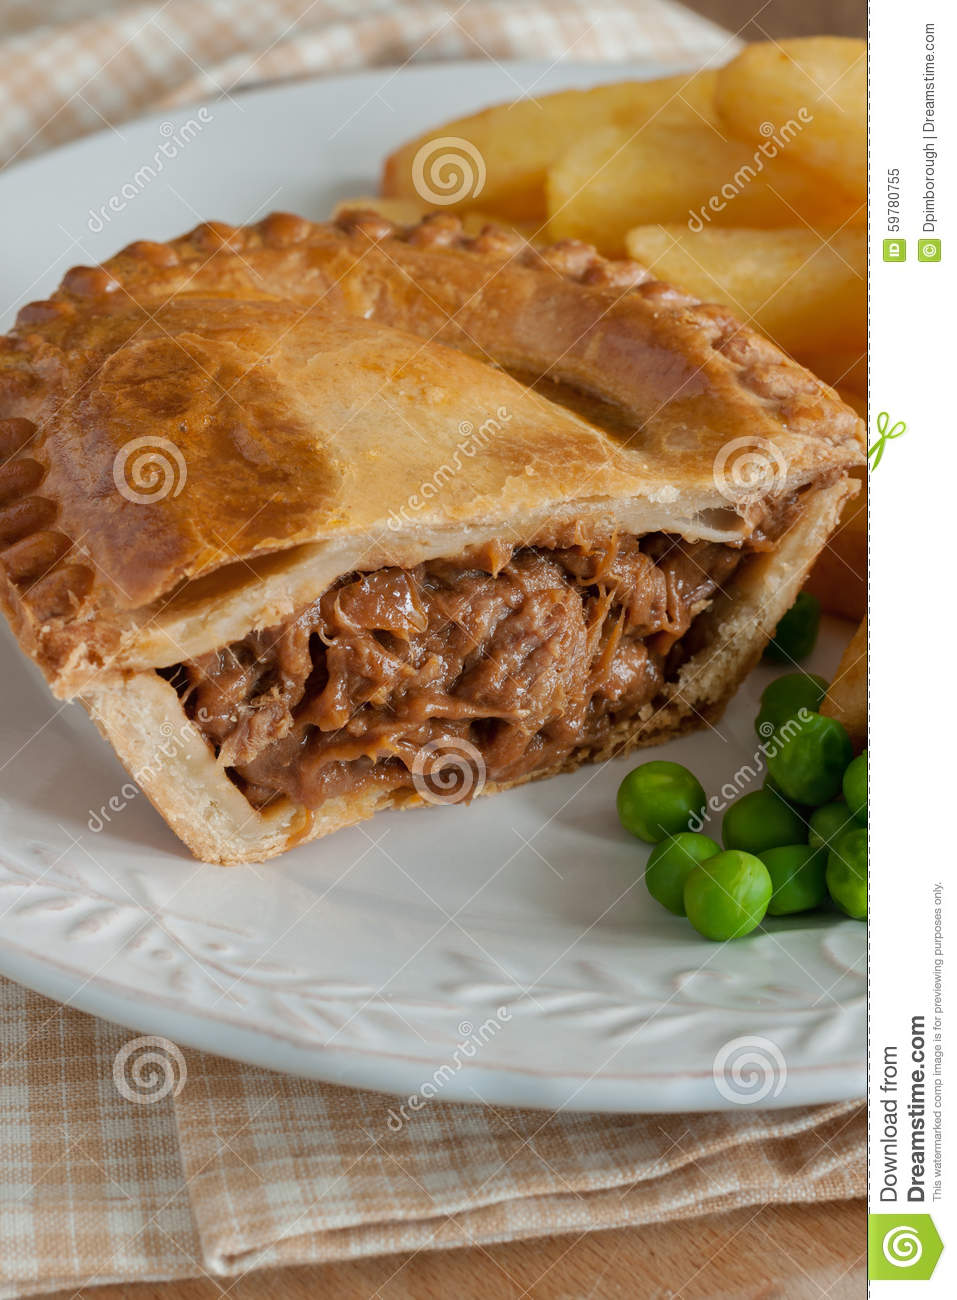 Steak Pie Chips and Peas stock image. Image of french ...